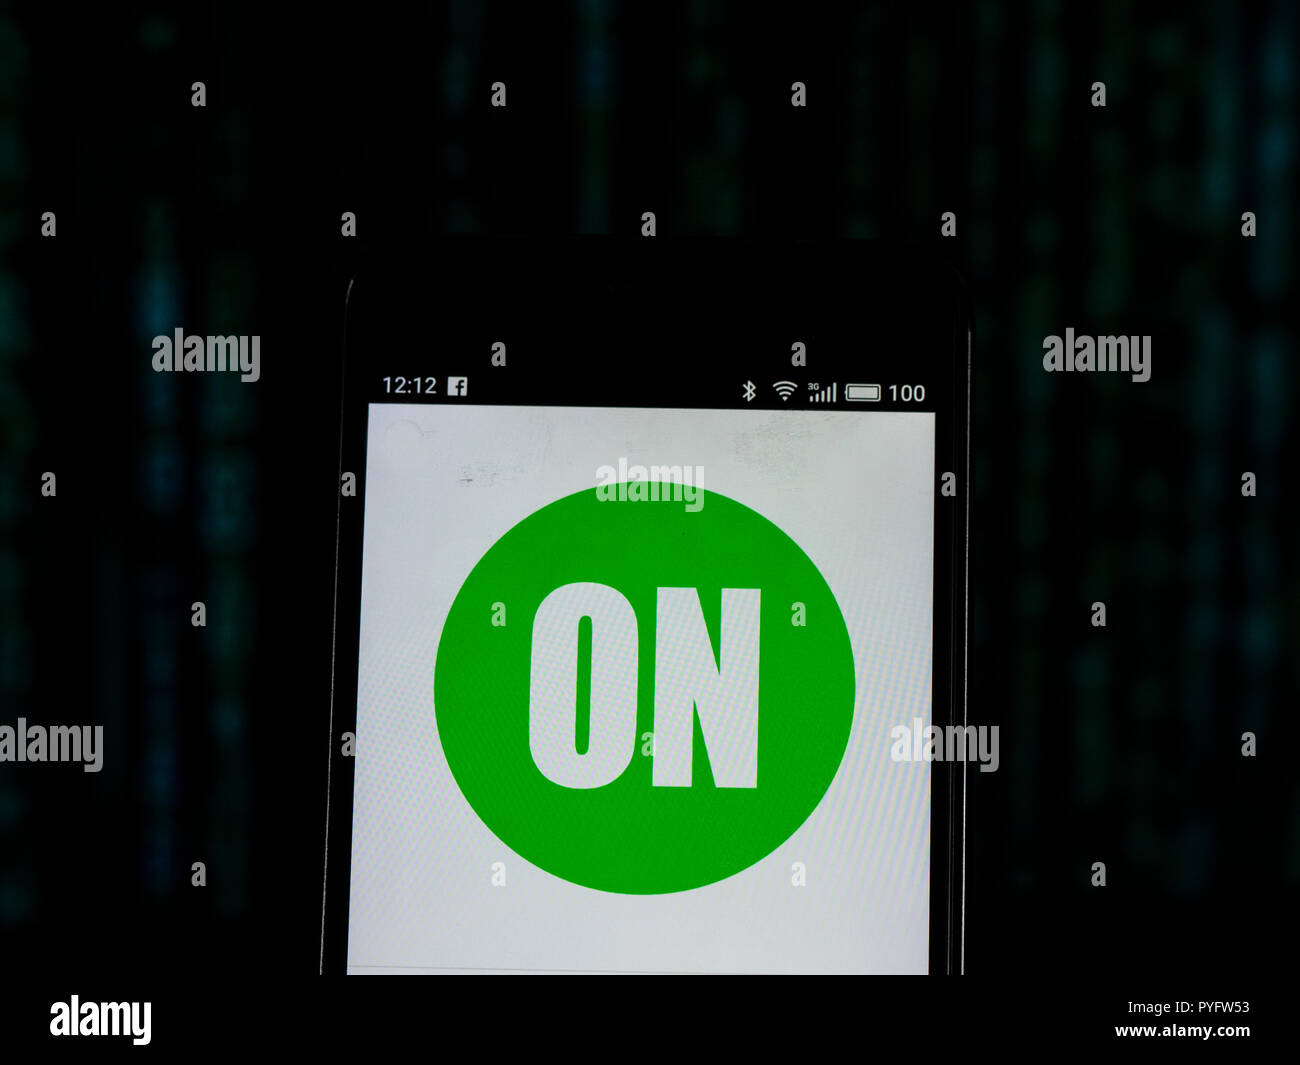 ON Semiconductor  Semiconductor manufacturing company logo